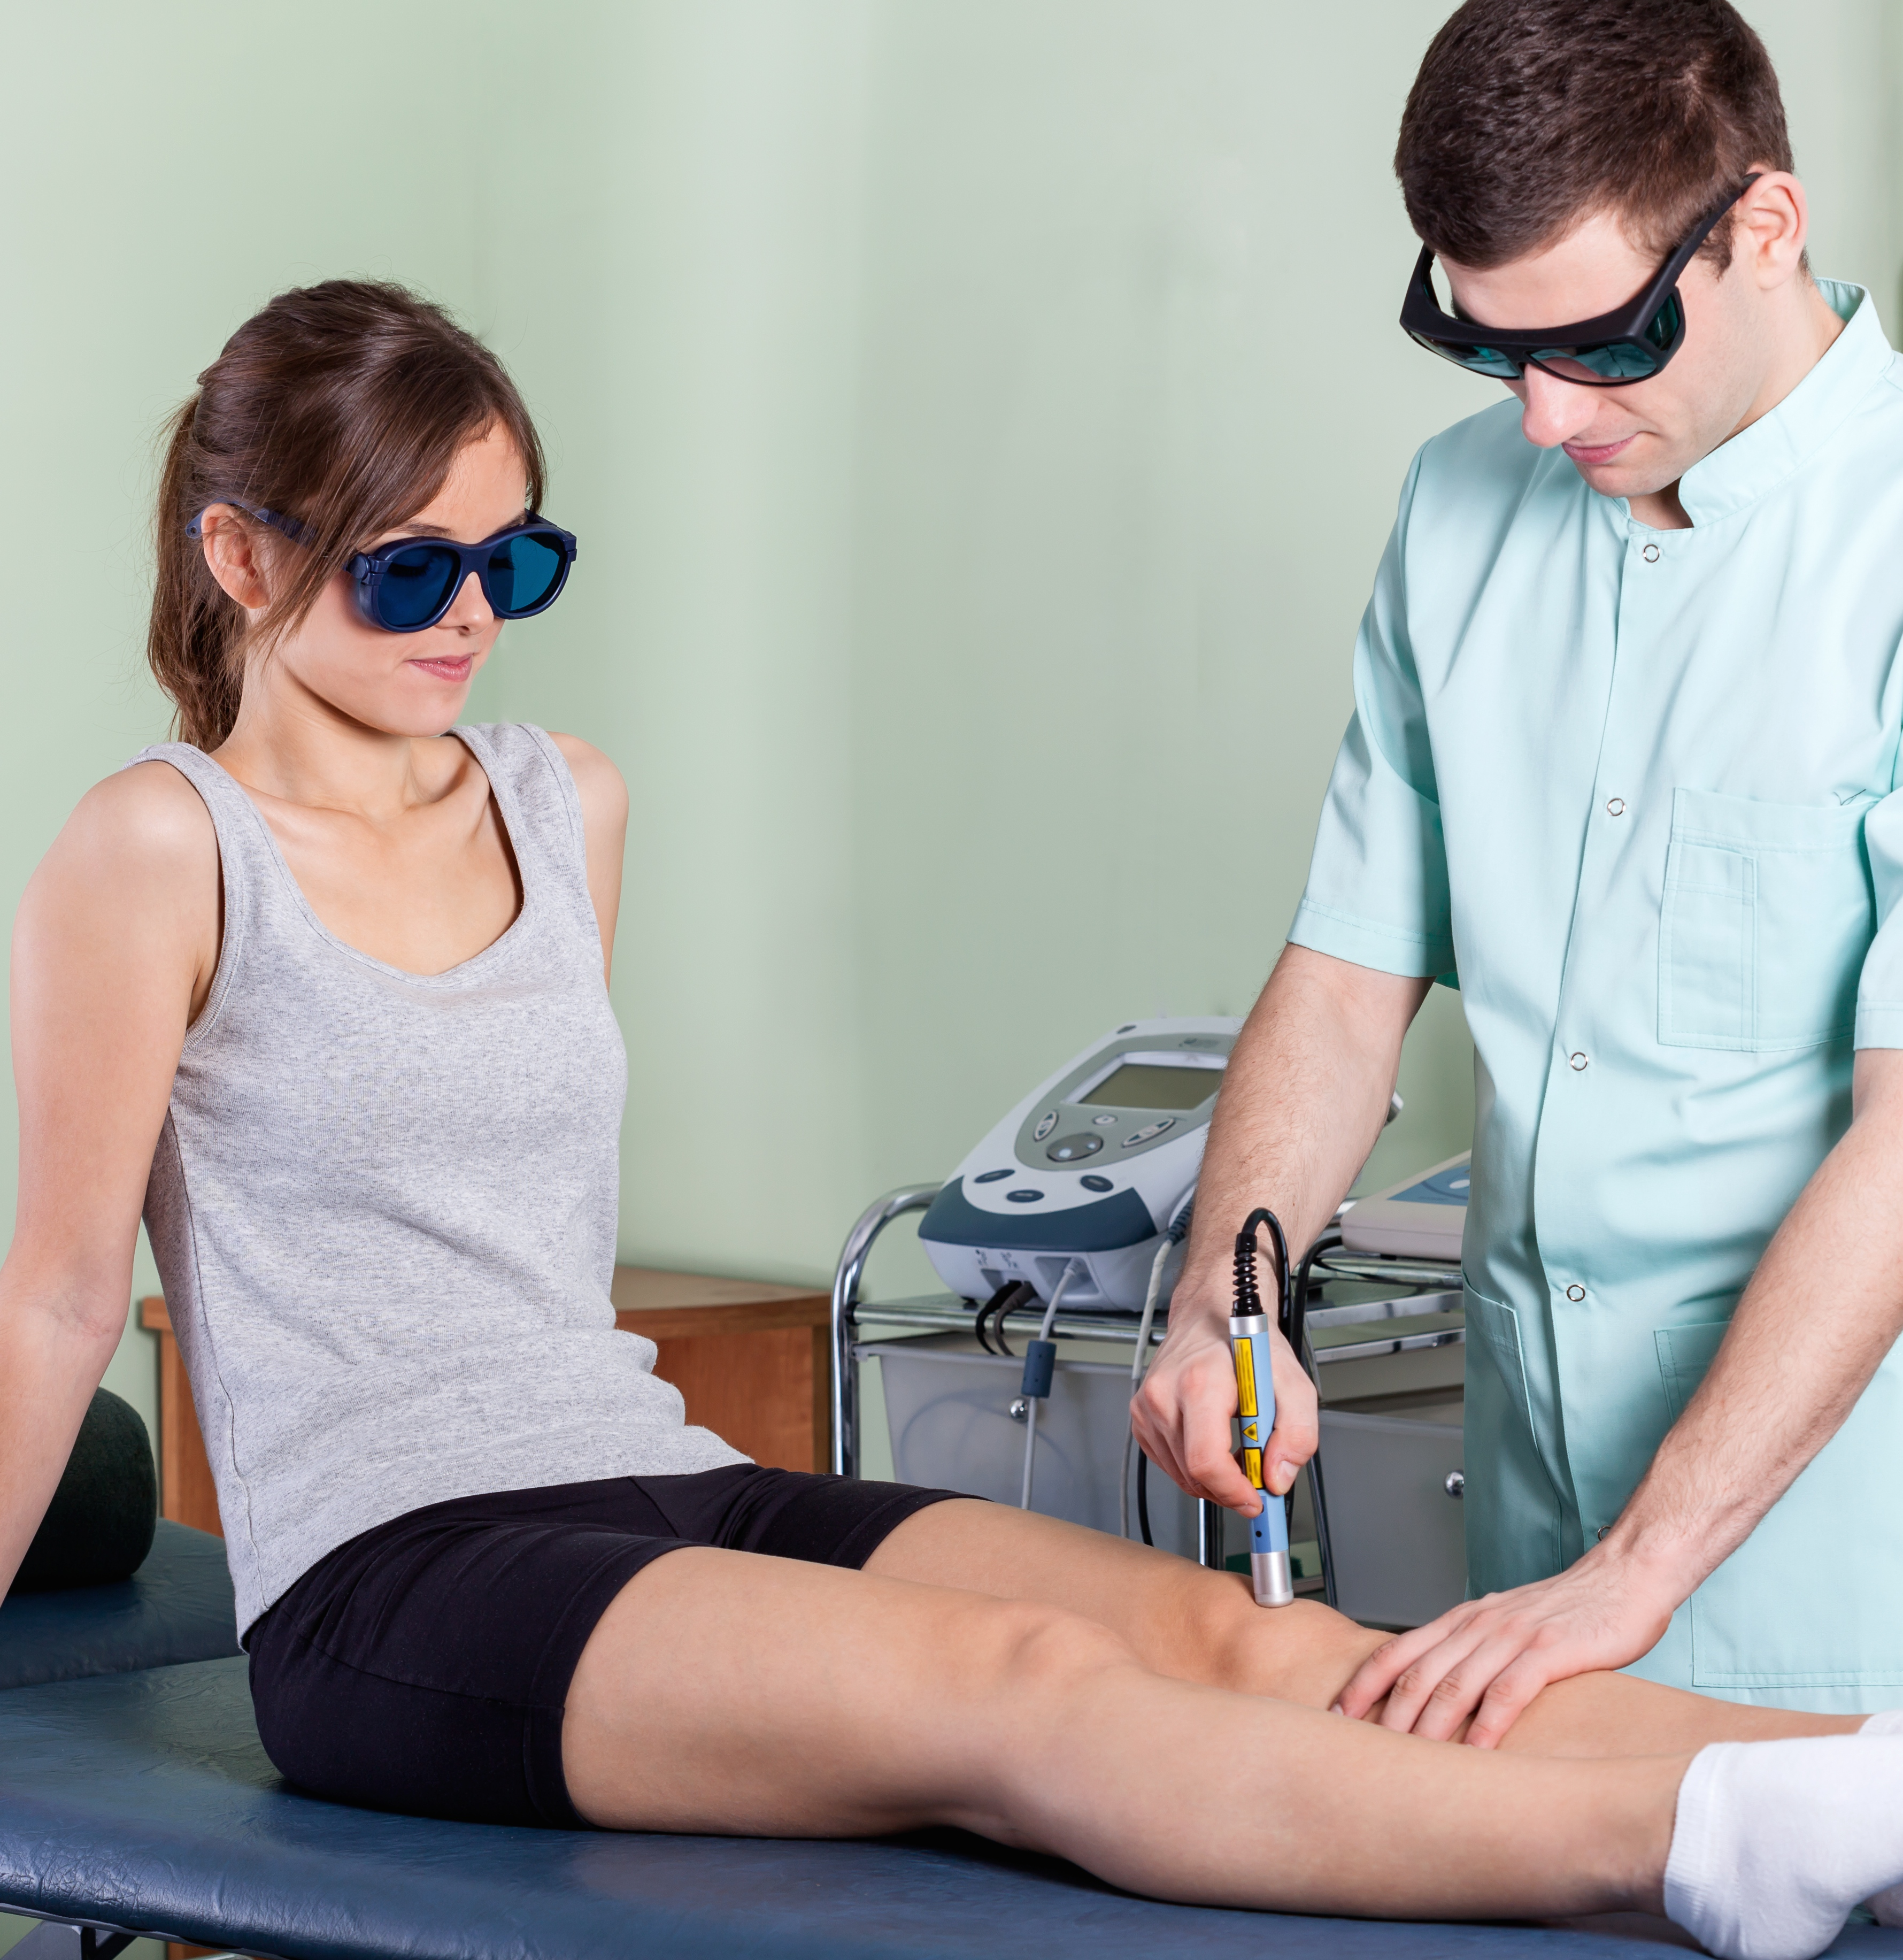 laser therapy to the knee